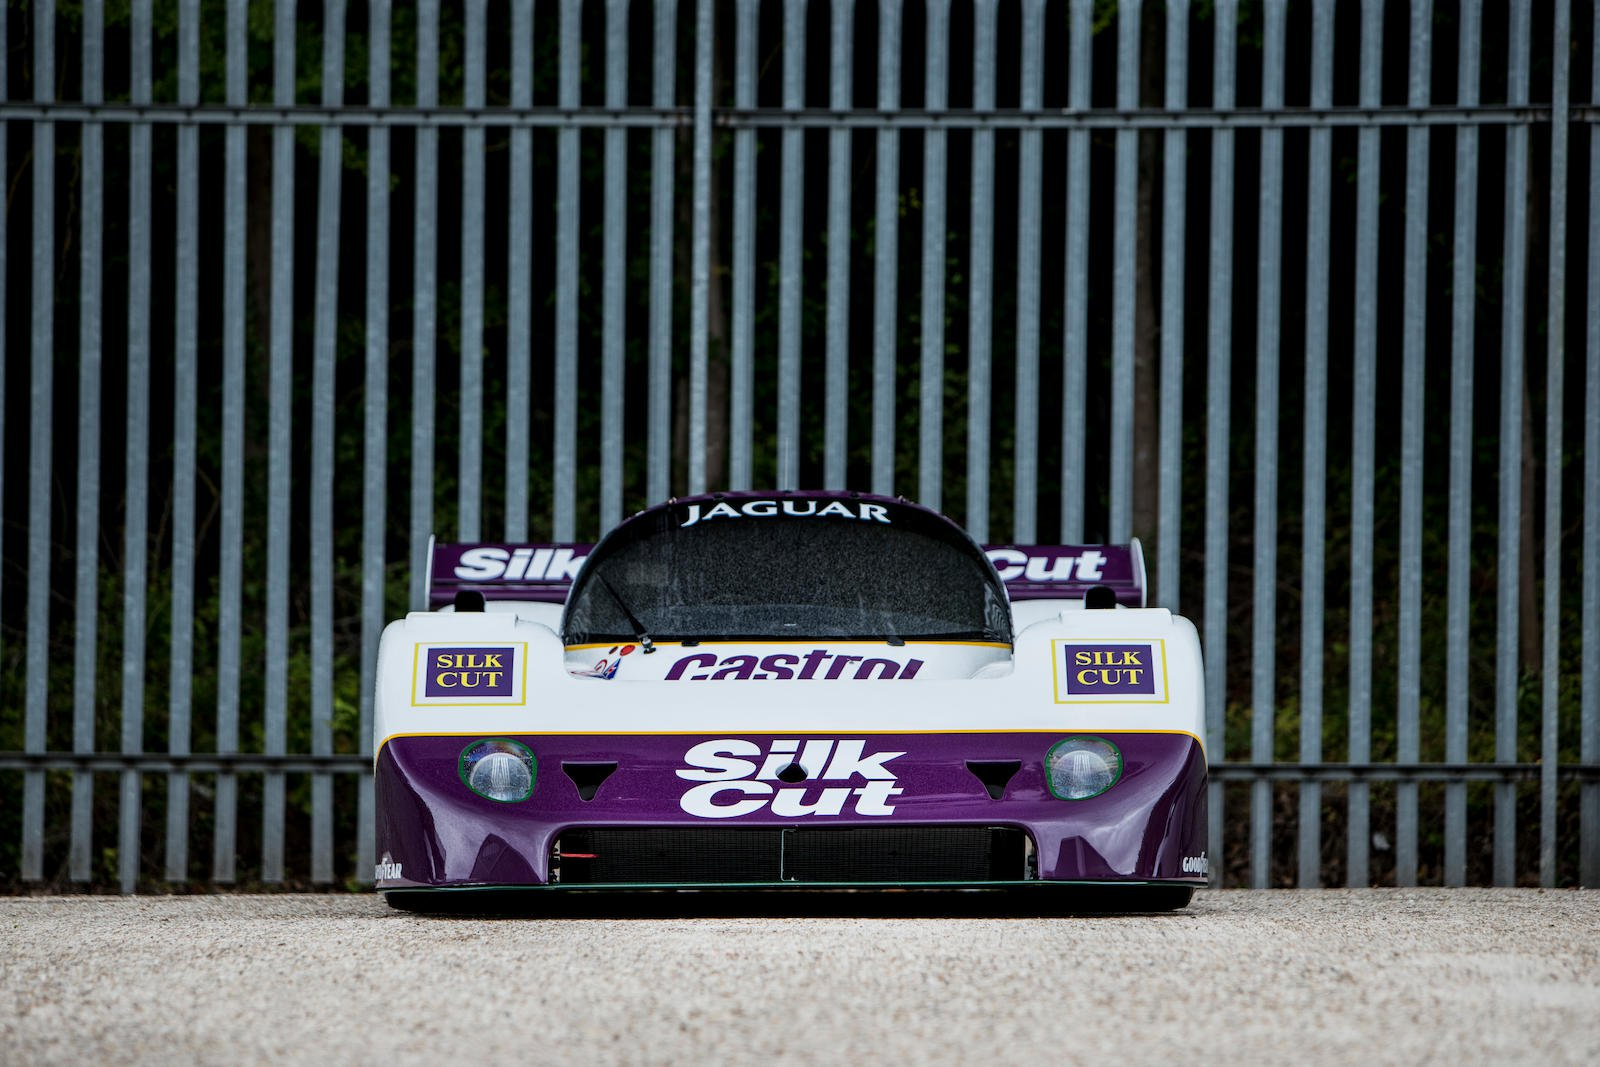 Jaguar XJR-11 in auction (4)